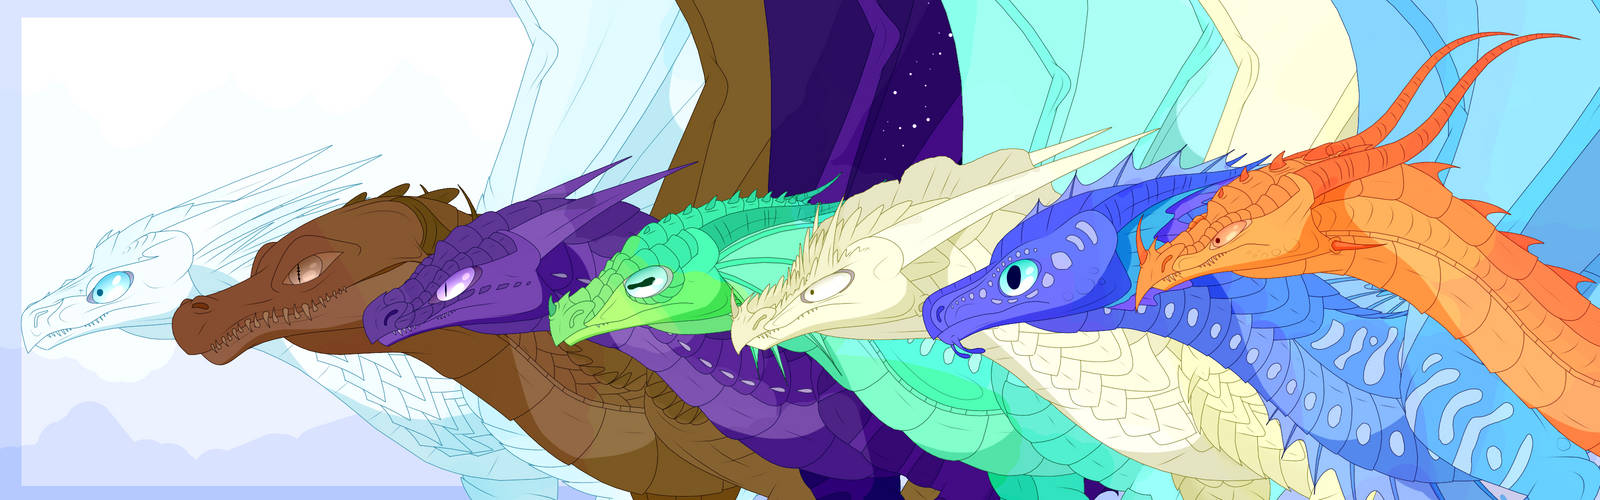 (Pyhrrian Tribes) Wings of Fire Fullbody Bases